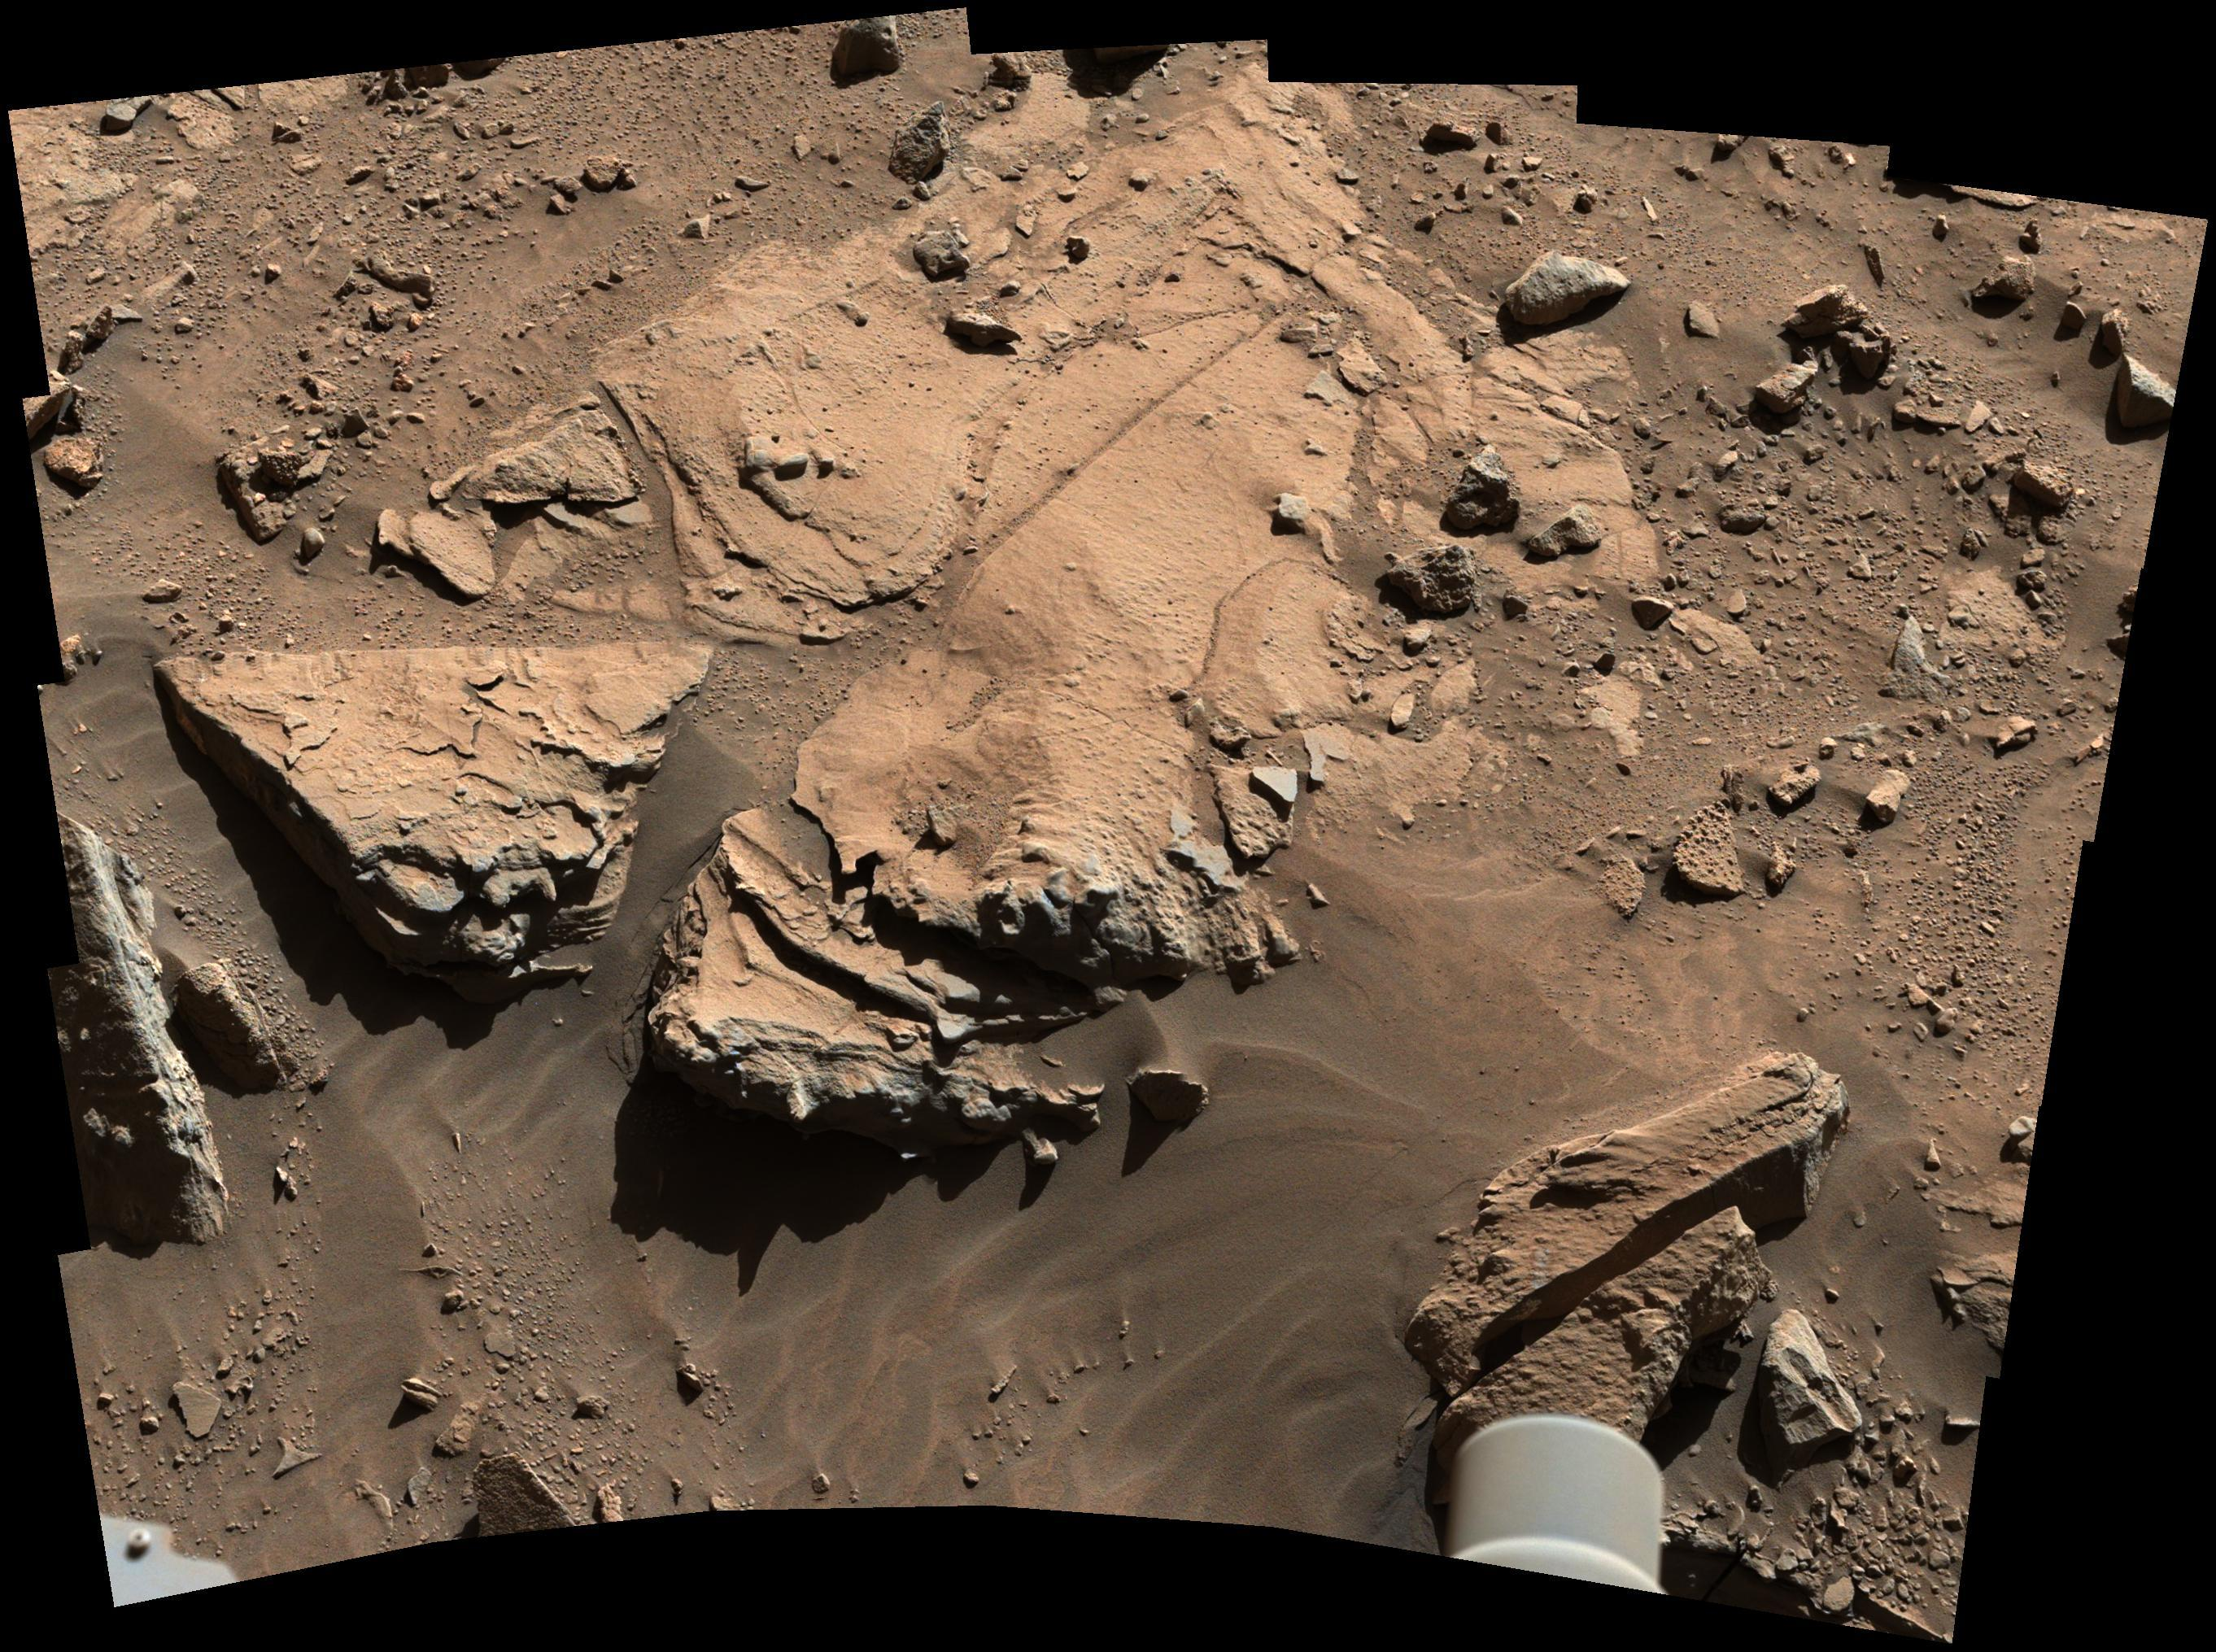 Curiosity Mars Rover Potential Sandstone Drill Target